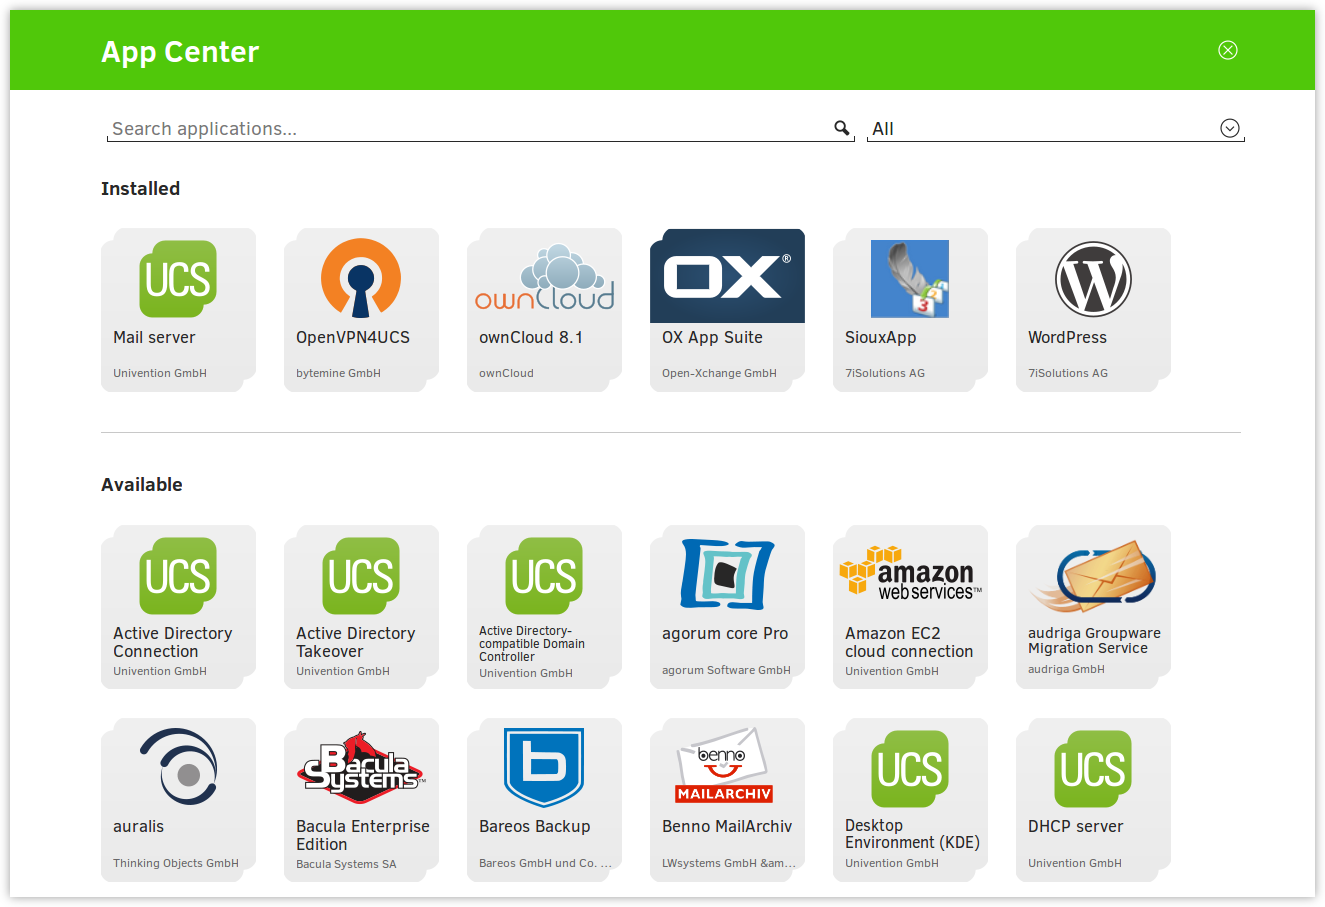 Overview of applications available in the App Center